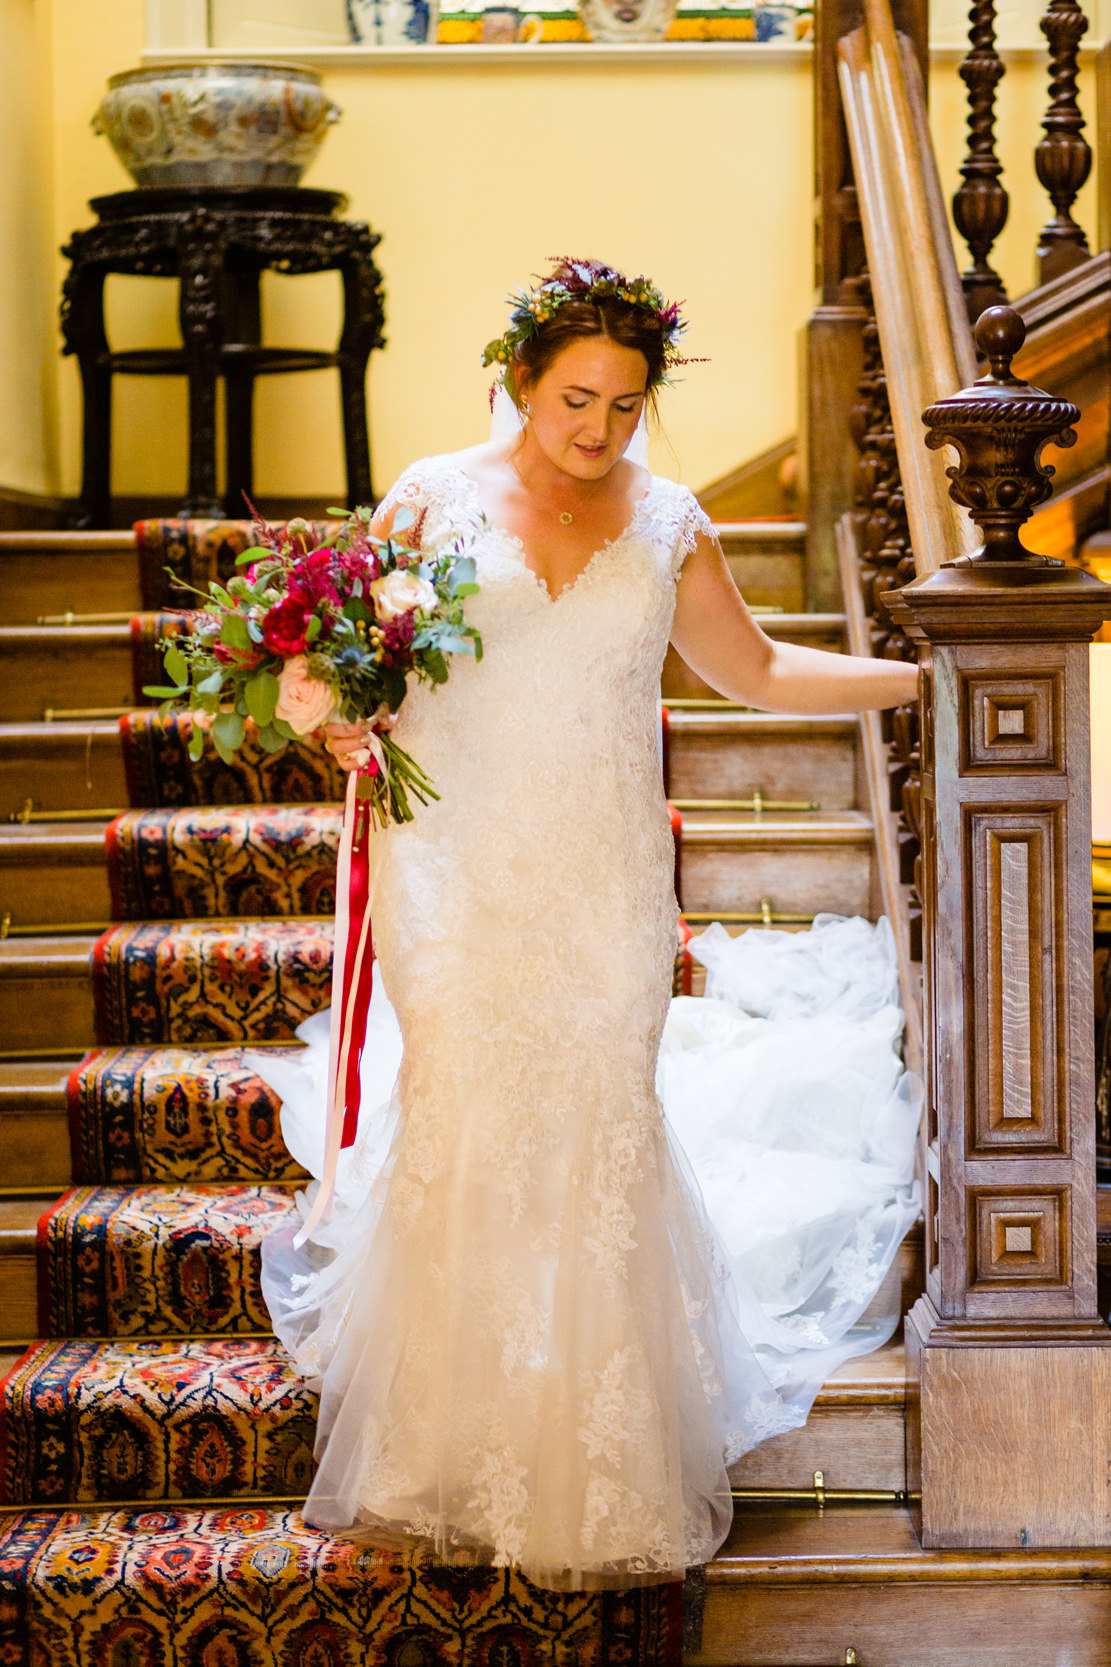 bride walking down stairs. scotland wedding photography by emma and rich.